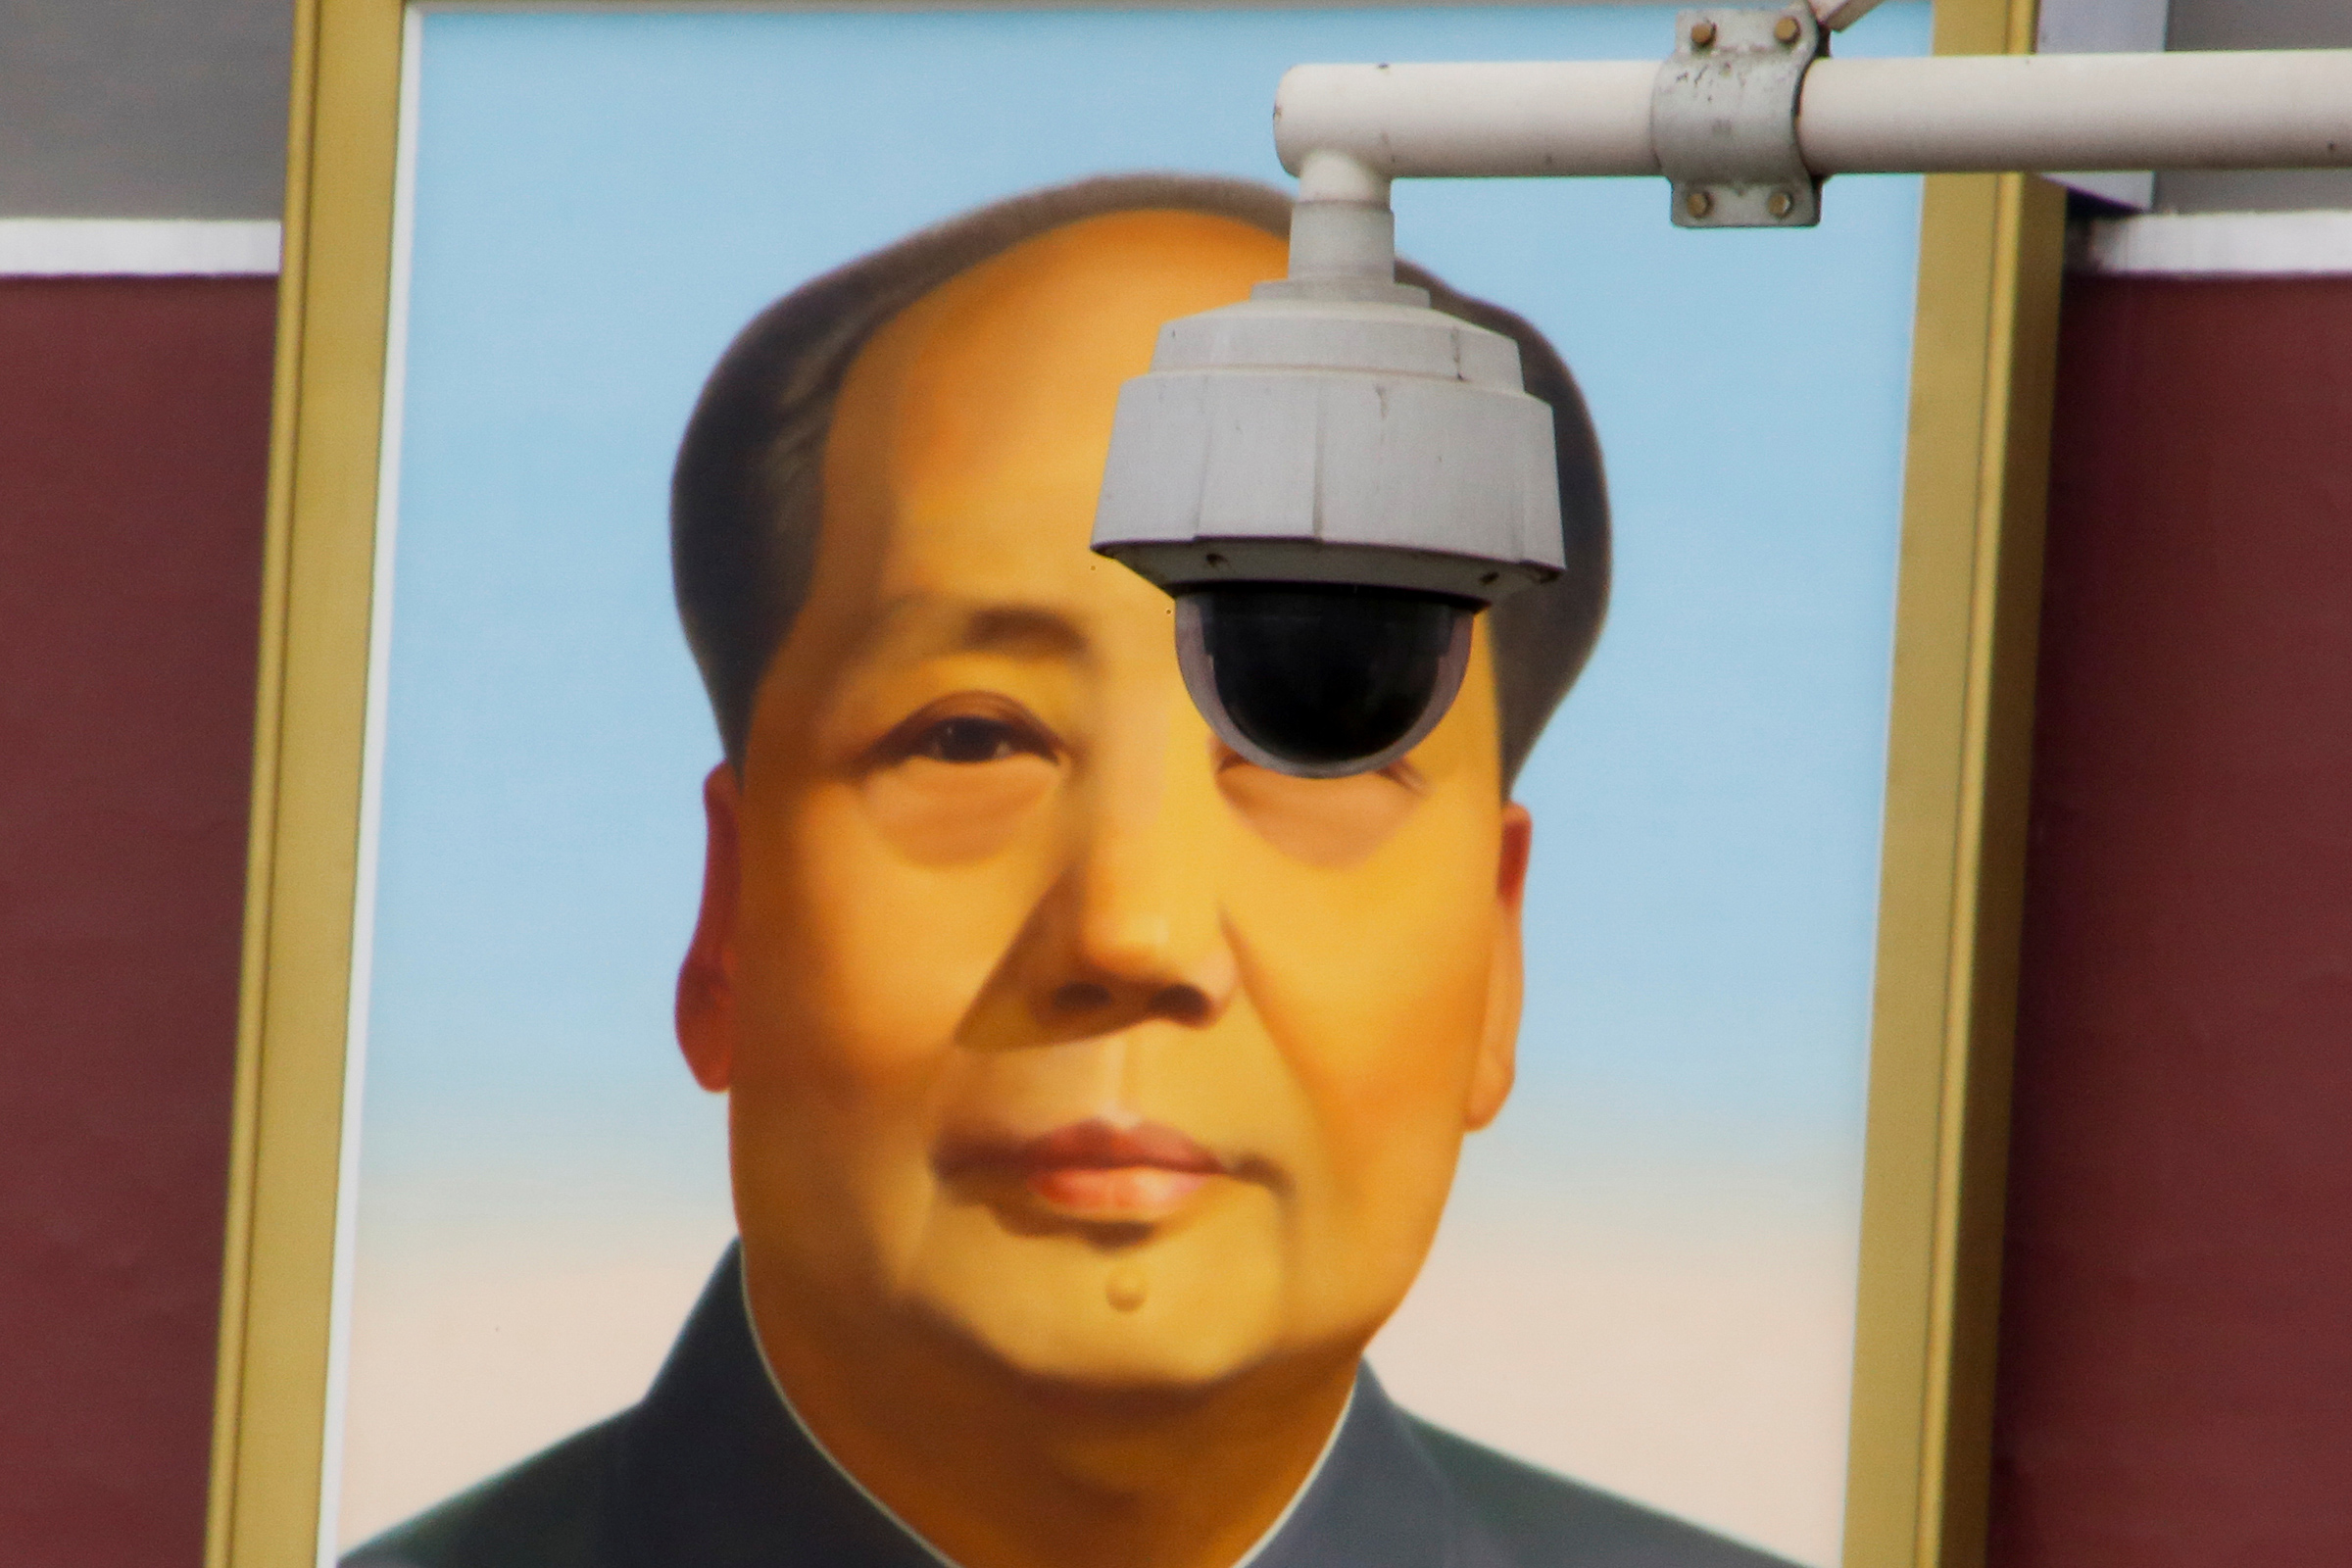 A surveillance camera overlooks Tiananmen Square in Beijing